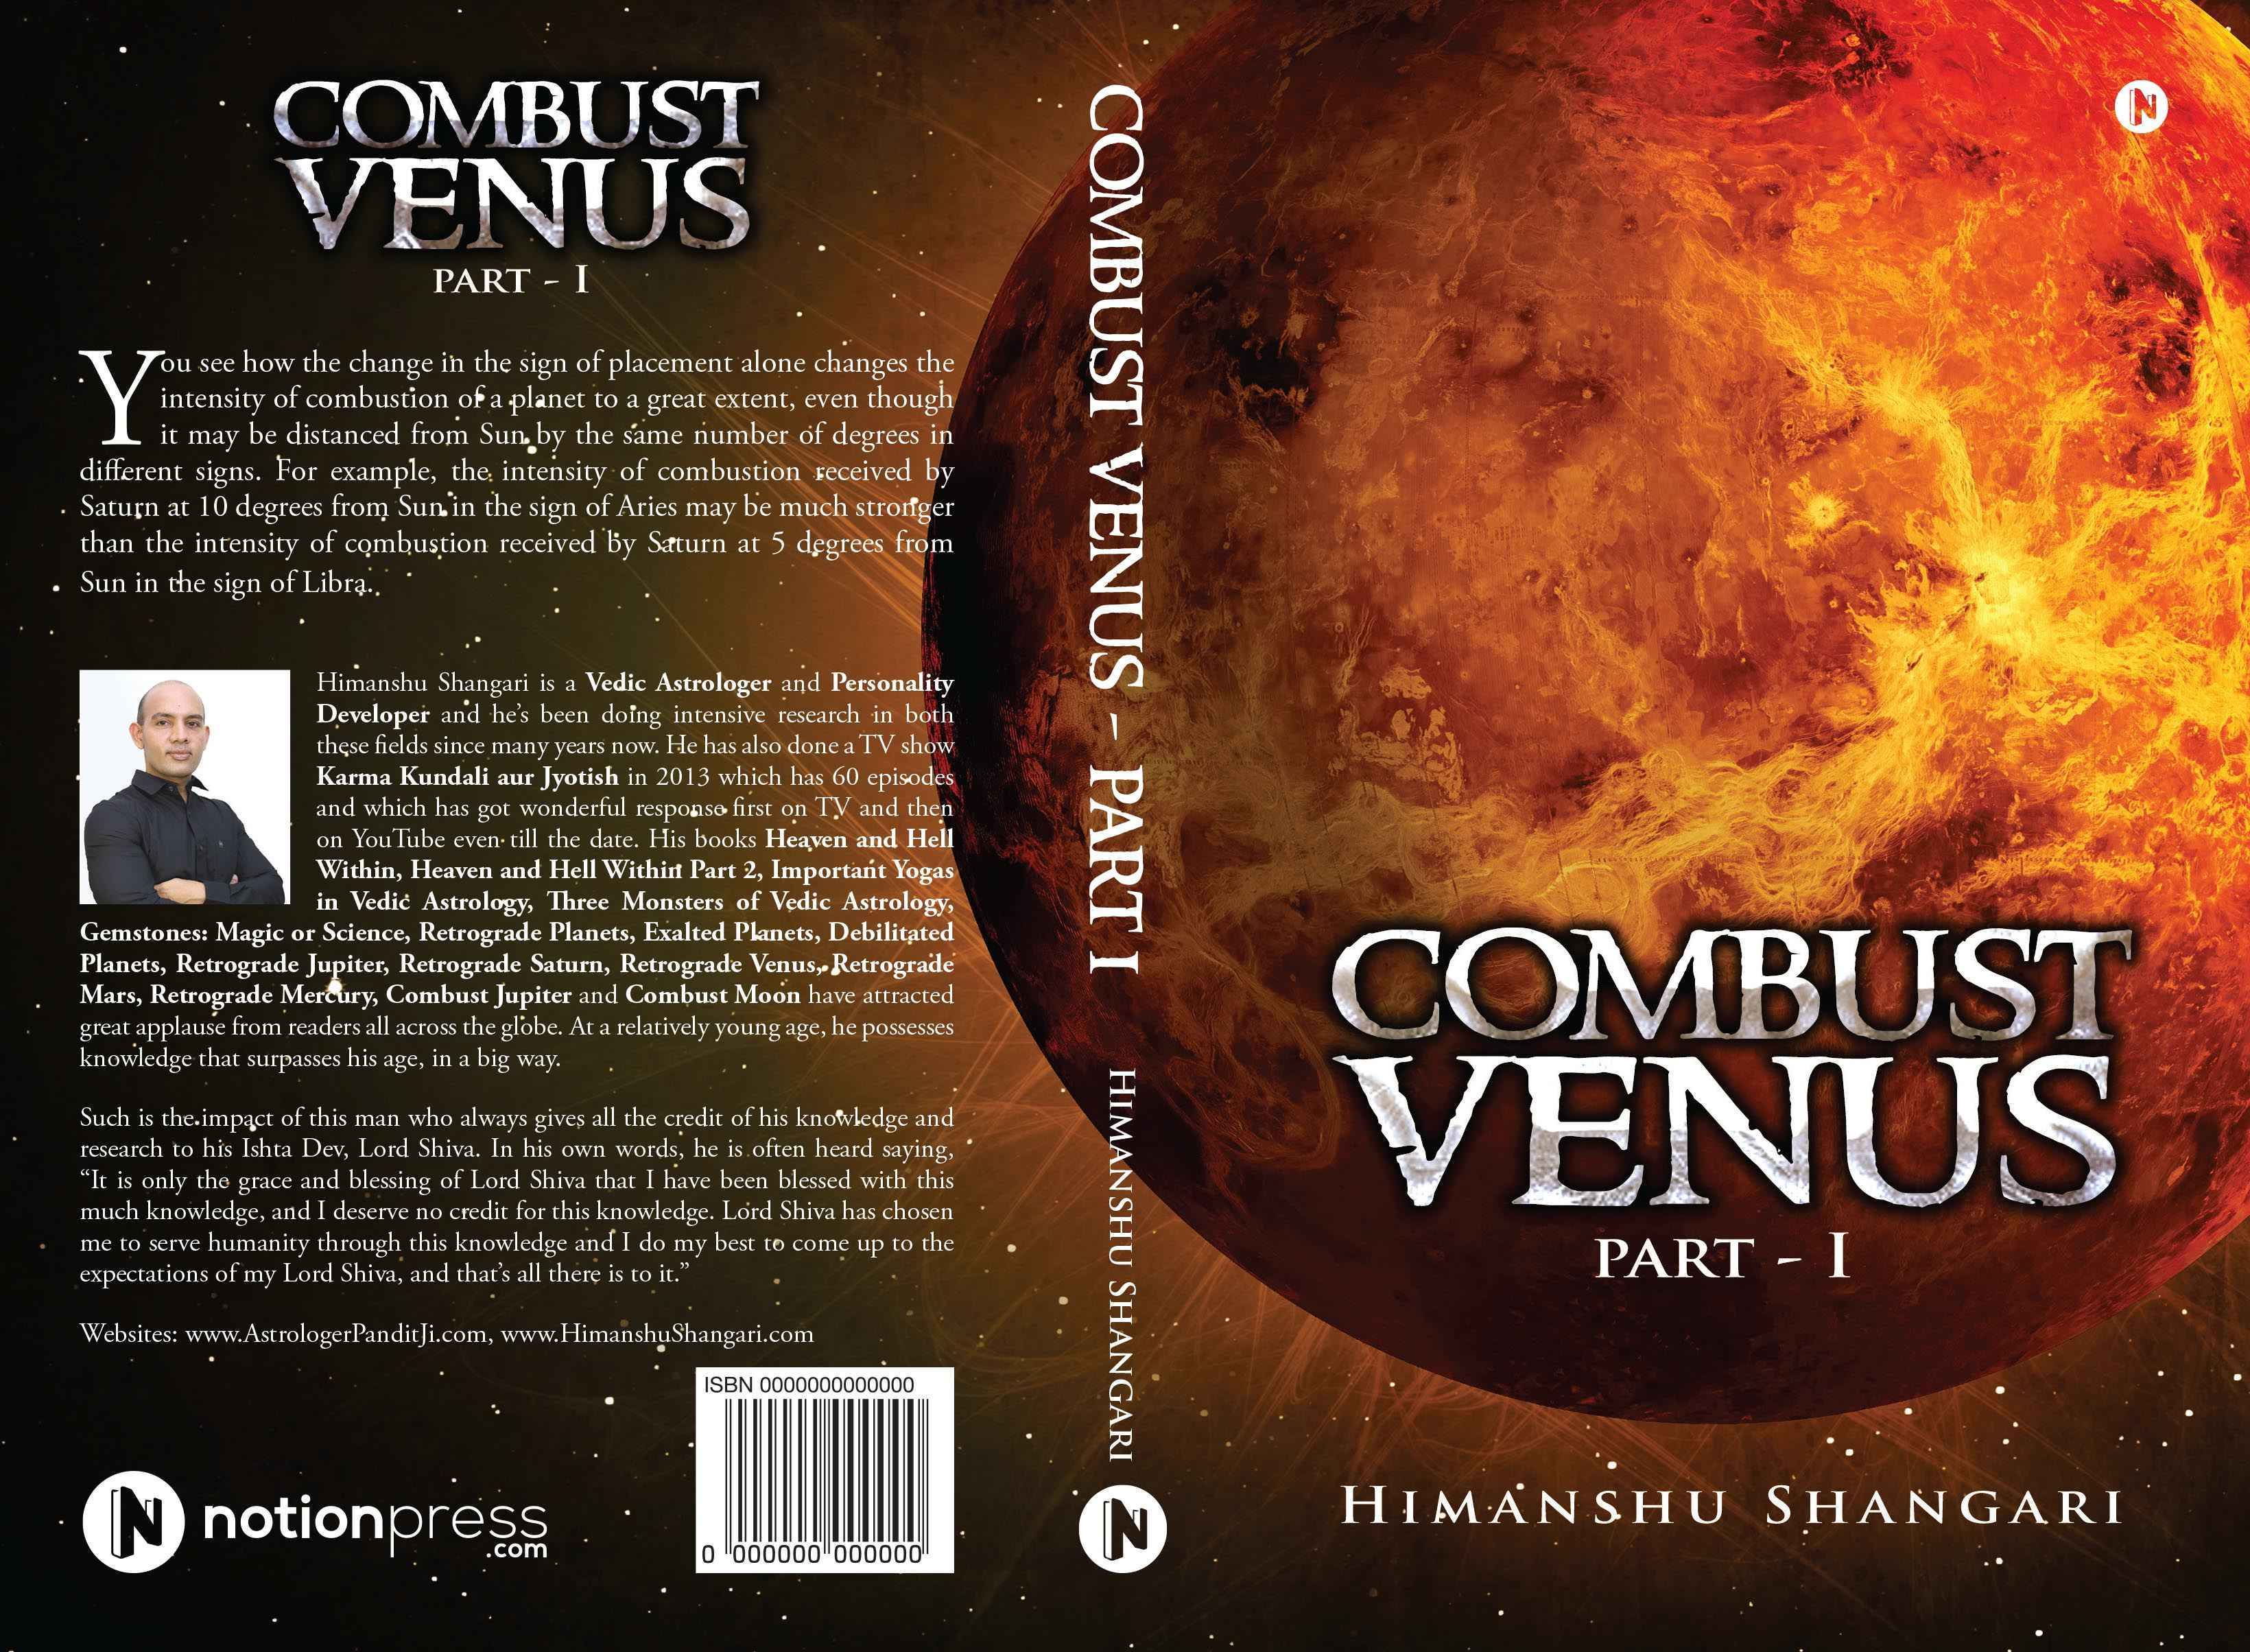 Combust Venus Part 1